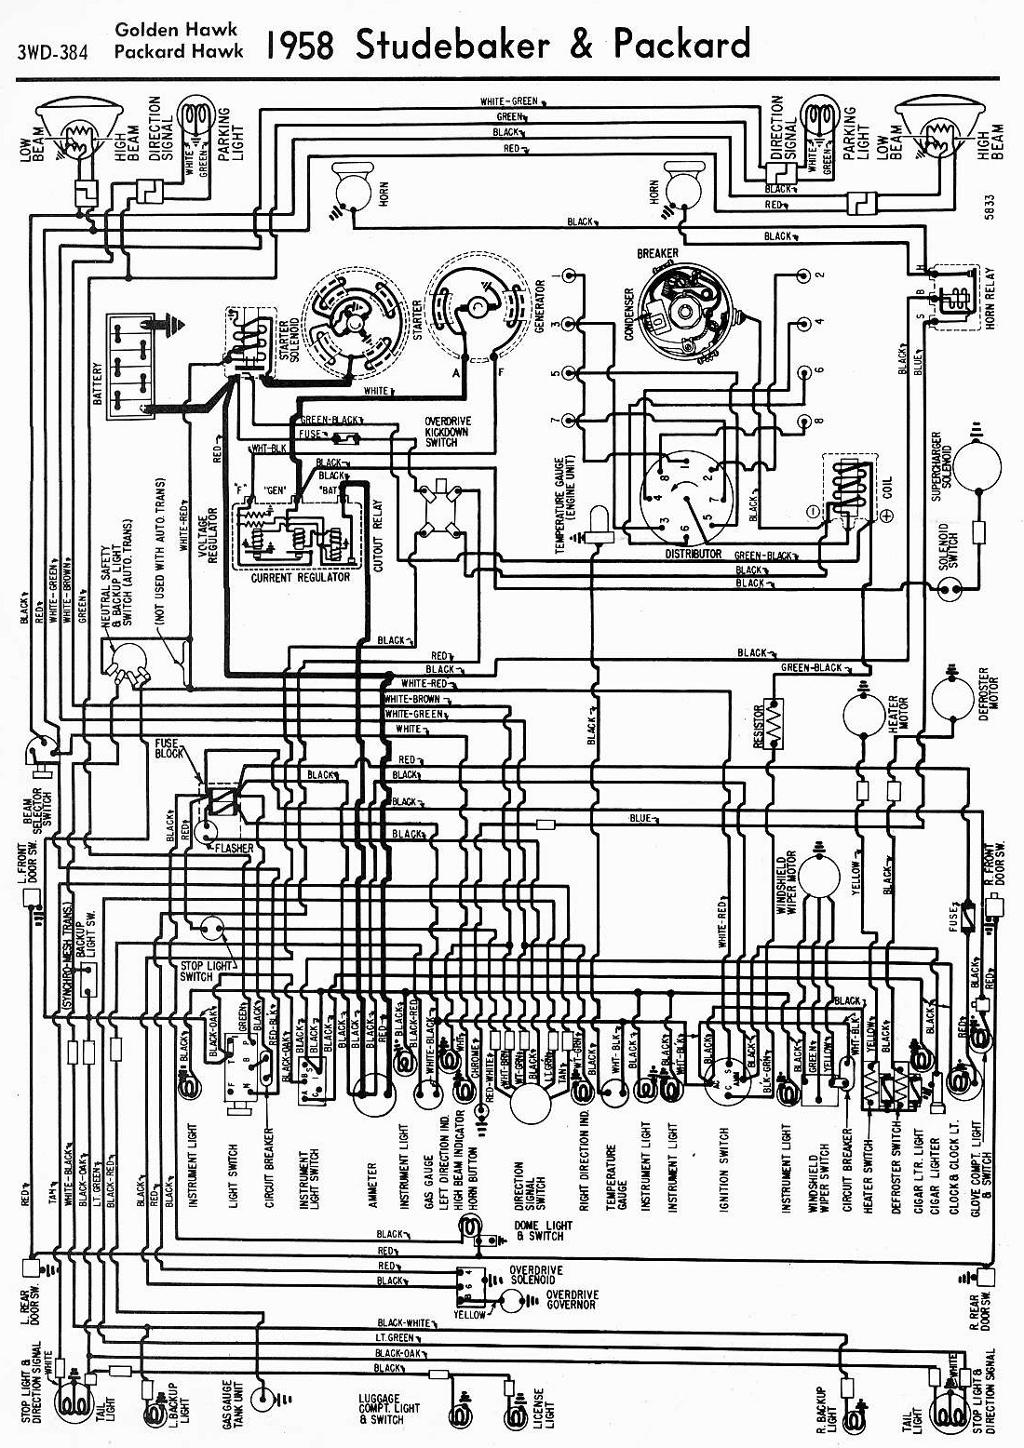 medium resolution of 1948 packard wiring diagram wiring diagram third level 1949 ford wiring diagram 1948 studebaker wiring diagram